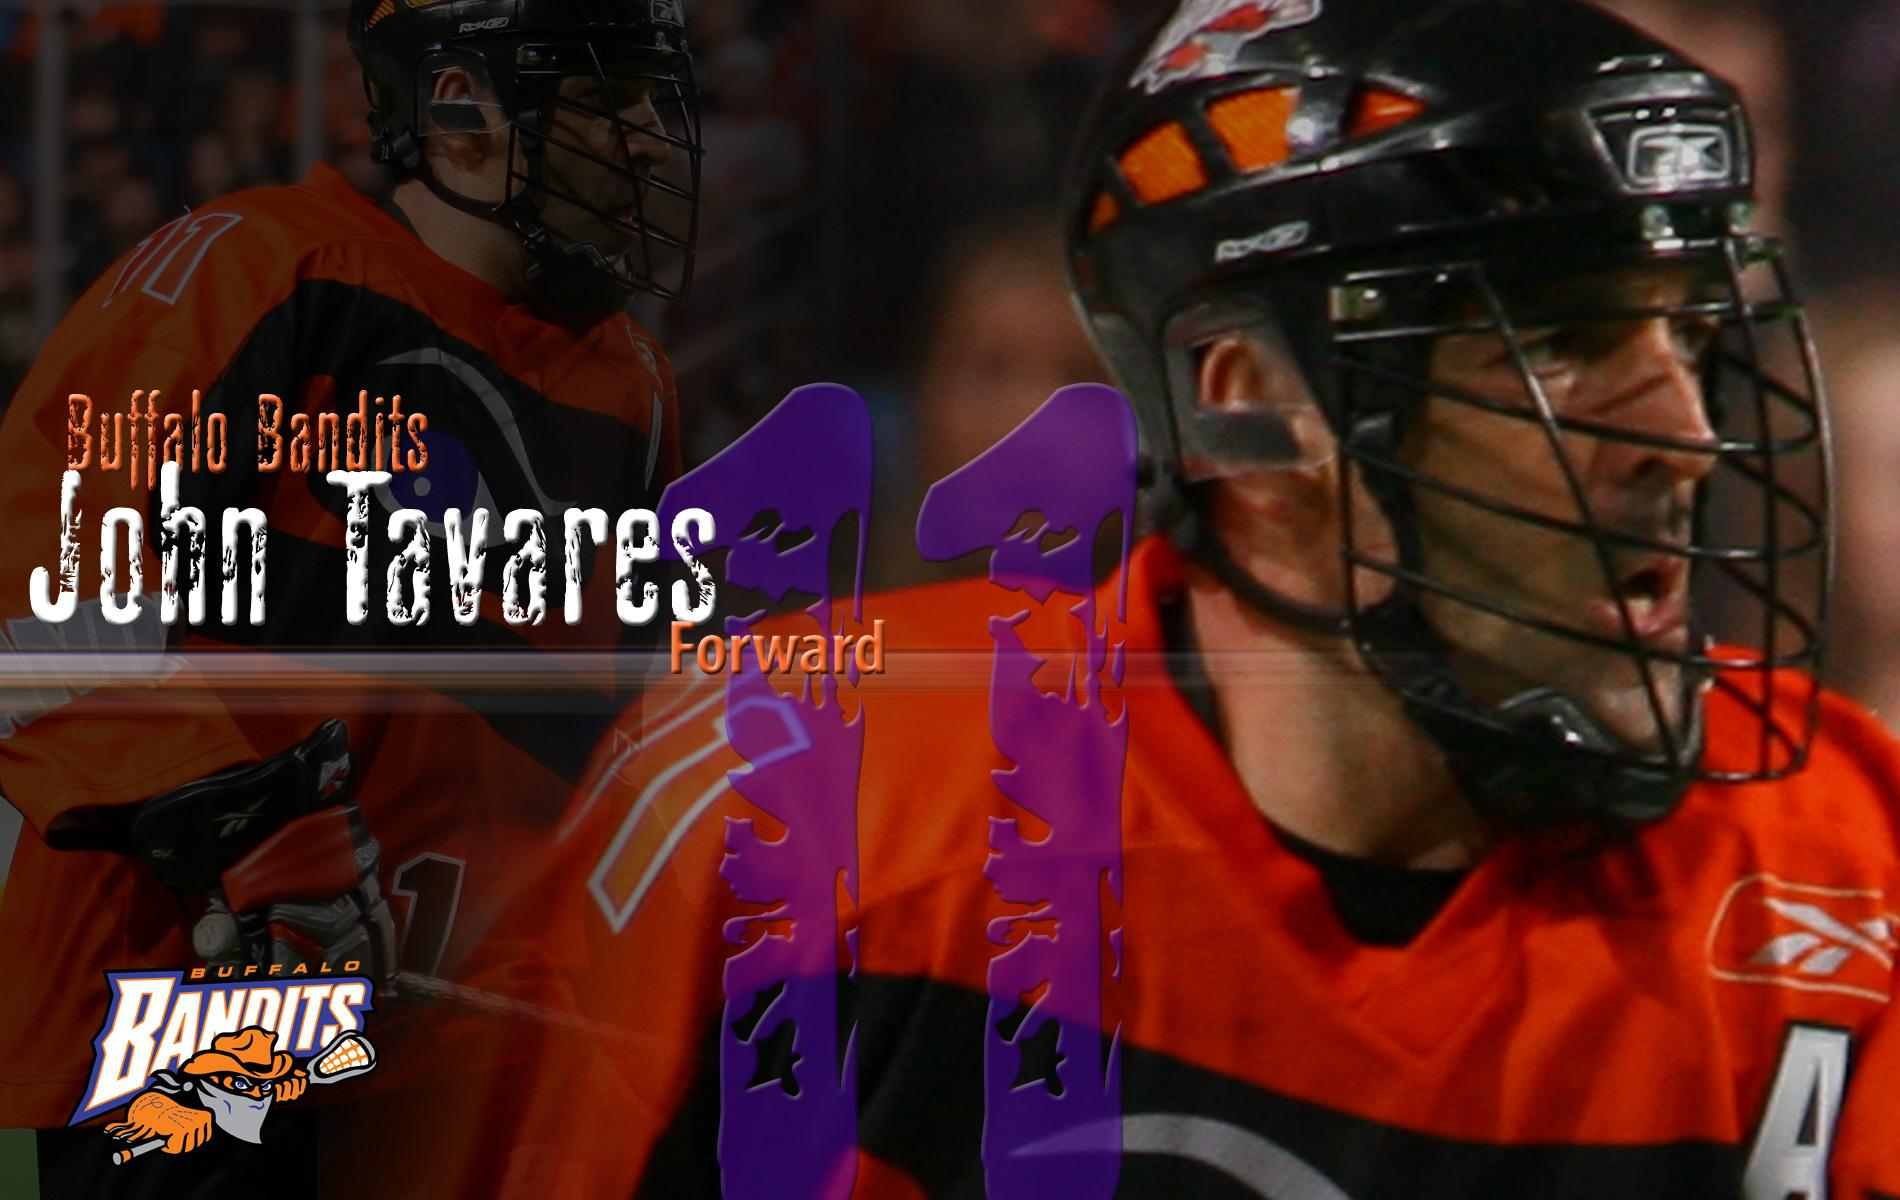 John Tavares the player wallpapers and images - wallpapers, pictures ...